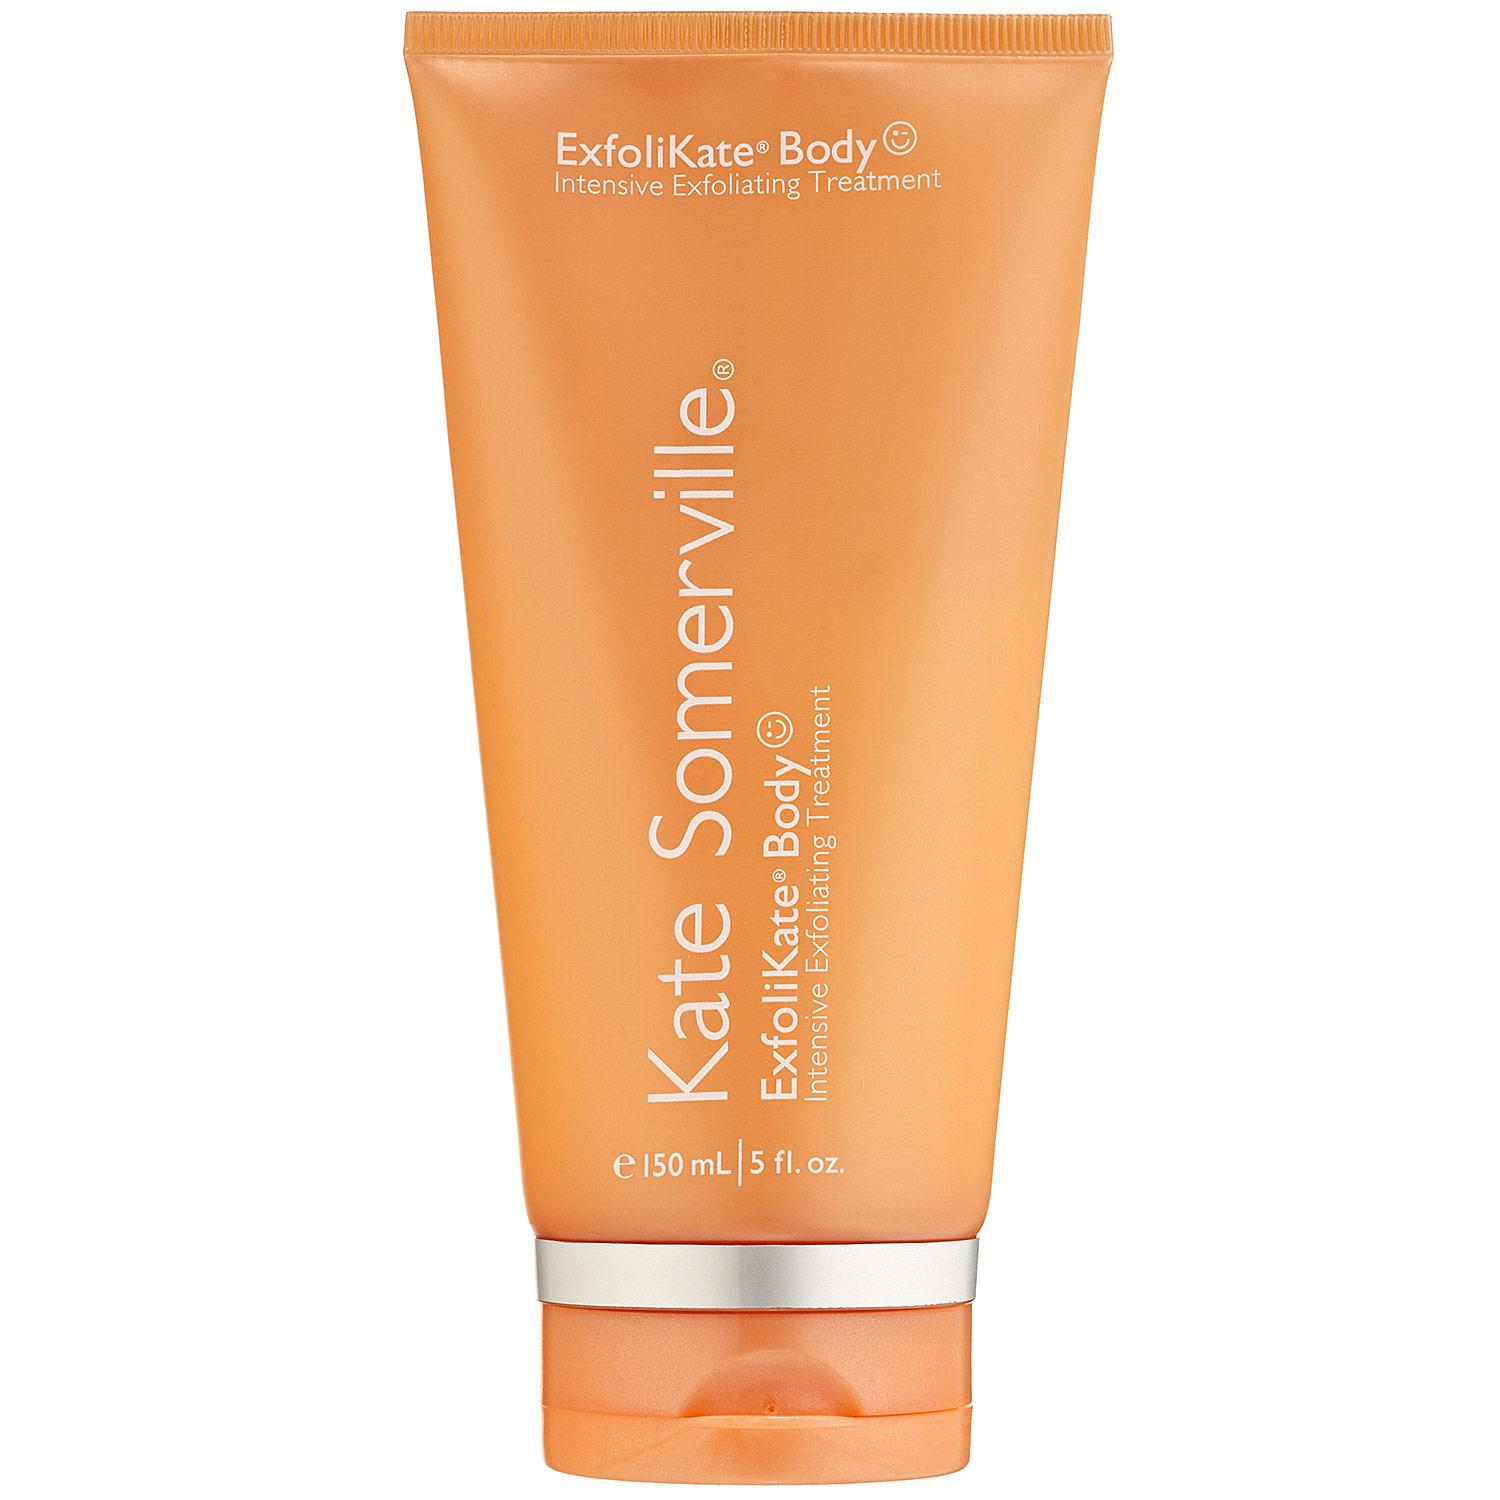 ExfoliKate® Body Intensive Exfoliating Treatment